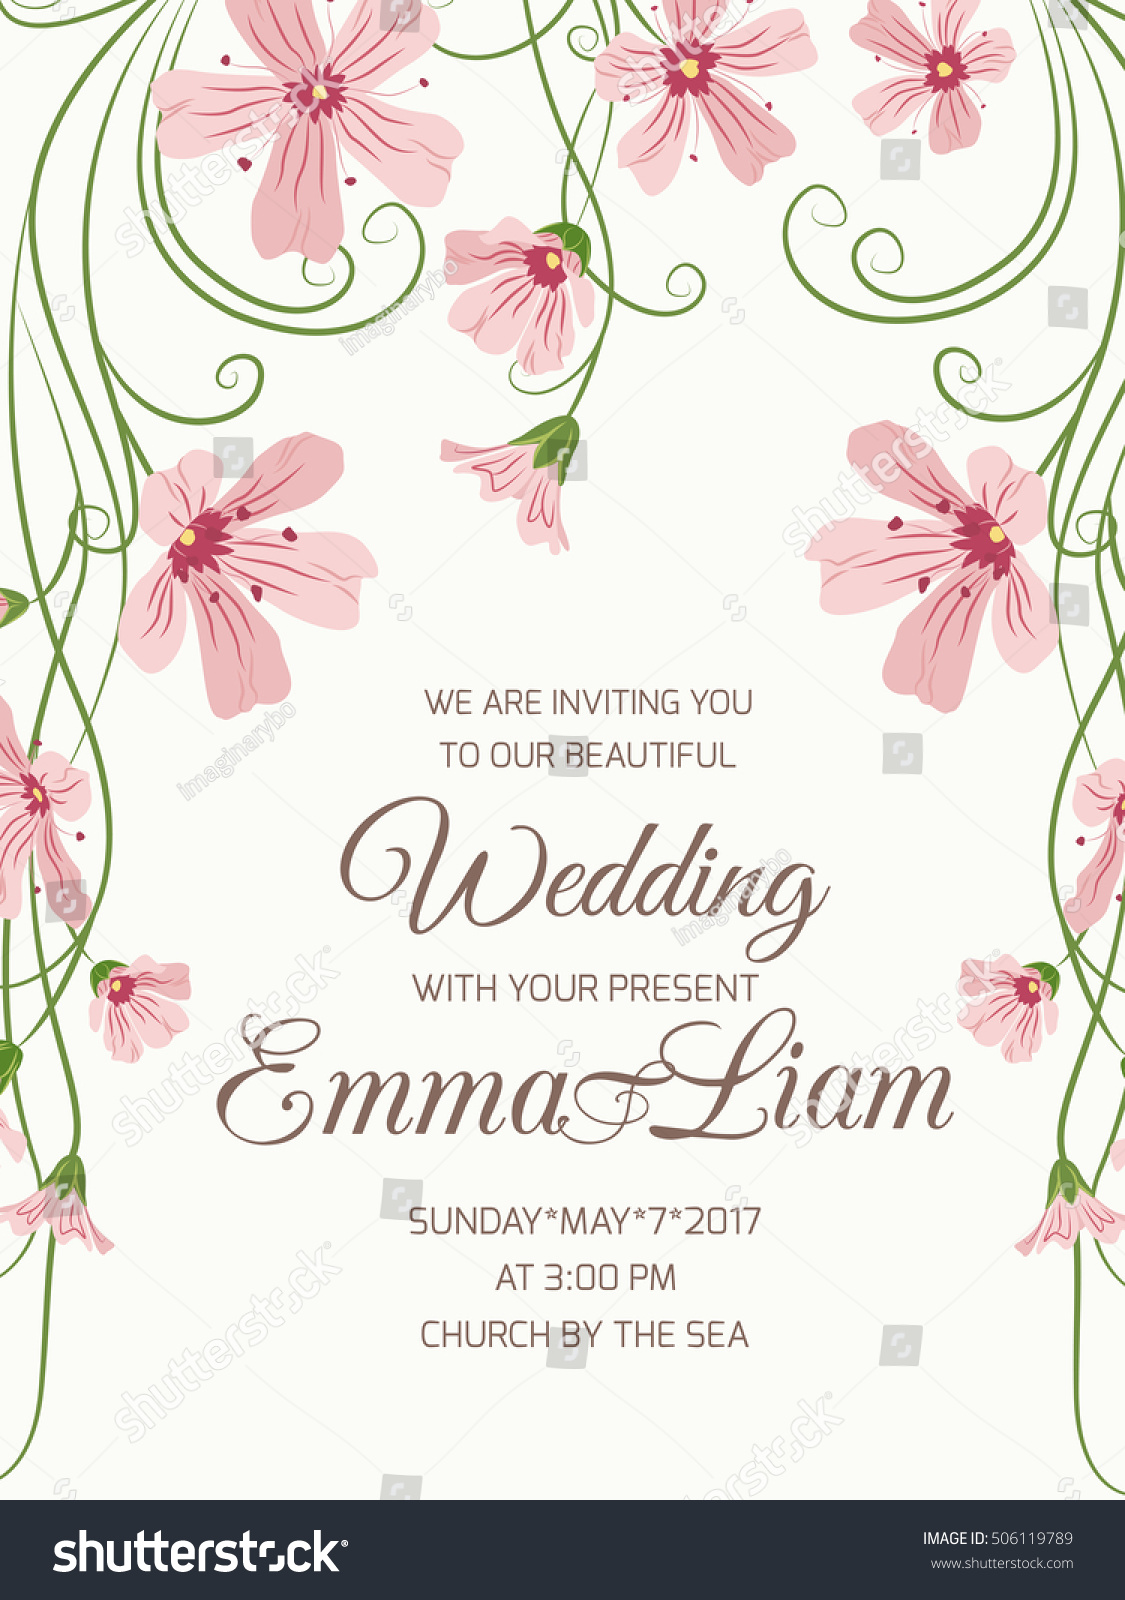 Wedding Ceremony Invitation Card Floral Template Stock Vector (2018 ...